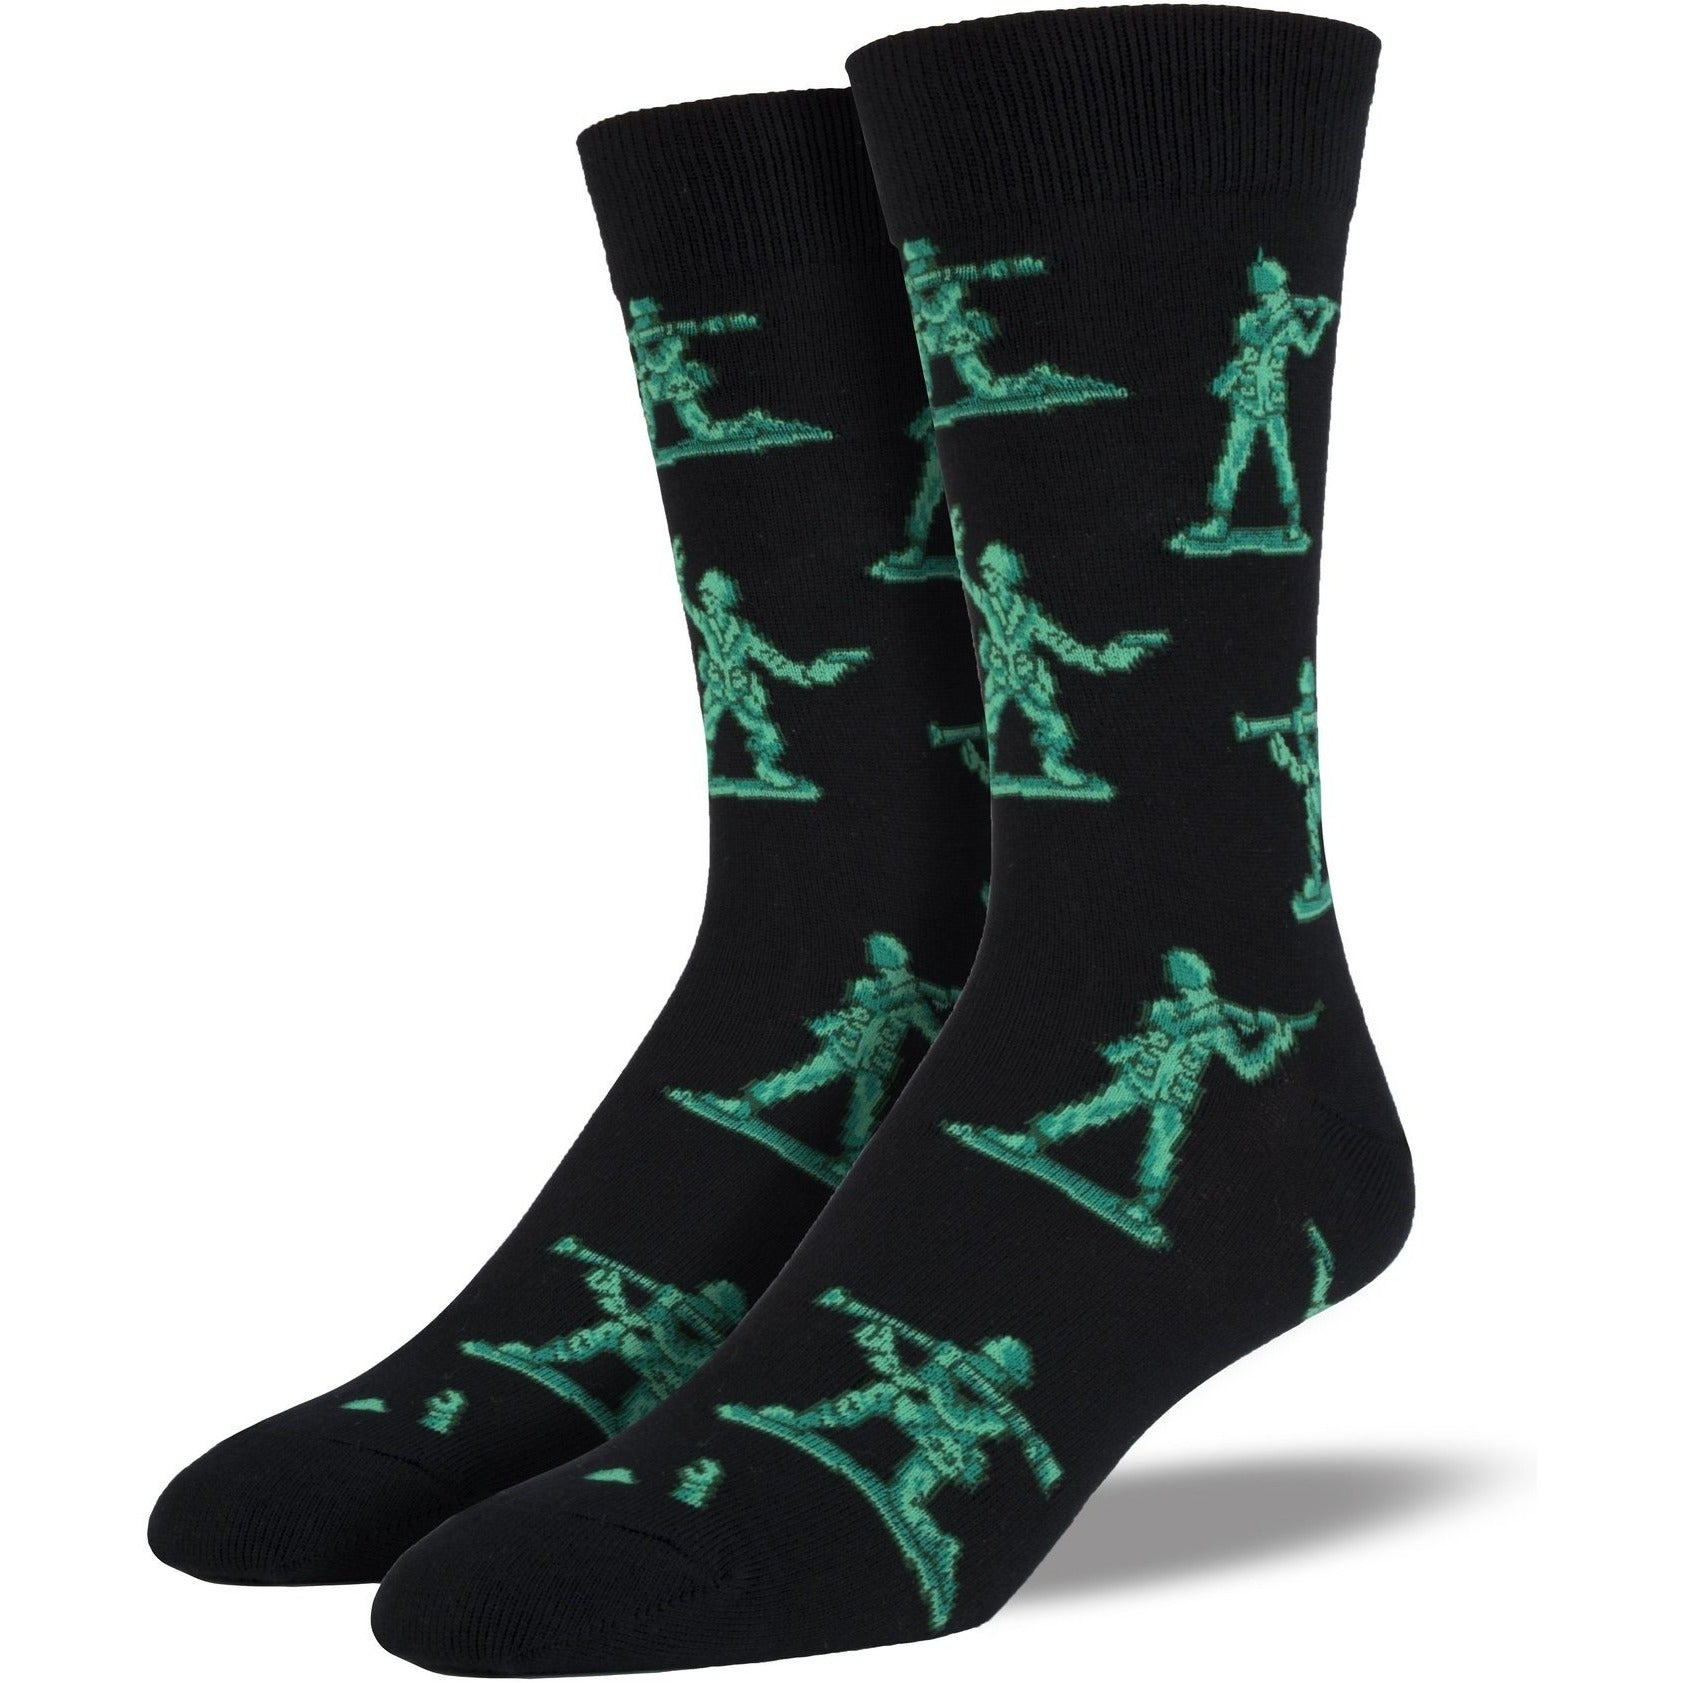 ARMYMEN SOCKS - Laughing Sock, Men's Socks - socks, Sock Smith - Hot Sox, Sock Guy, Socksmith